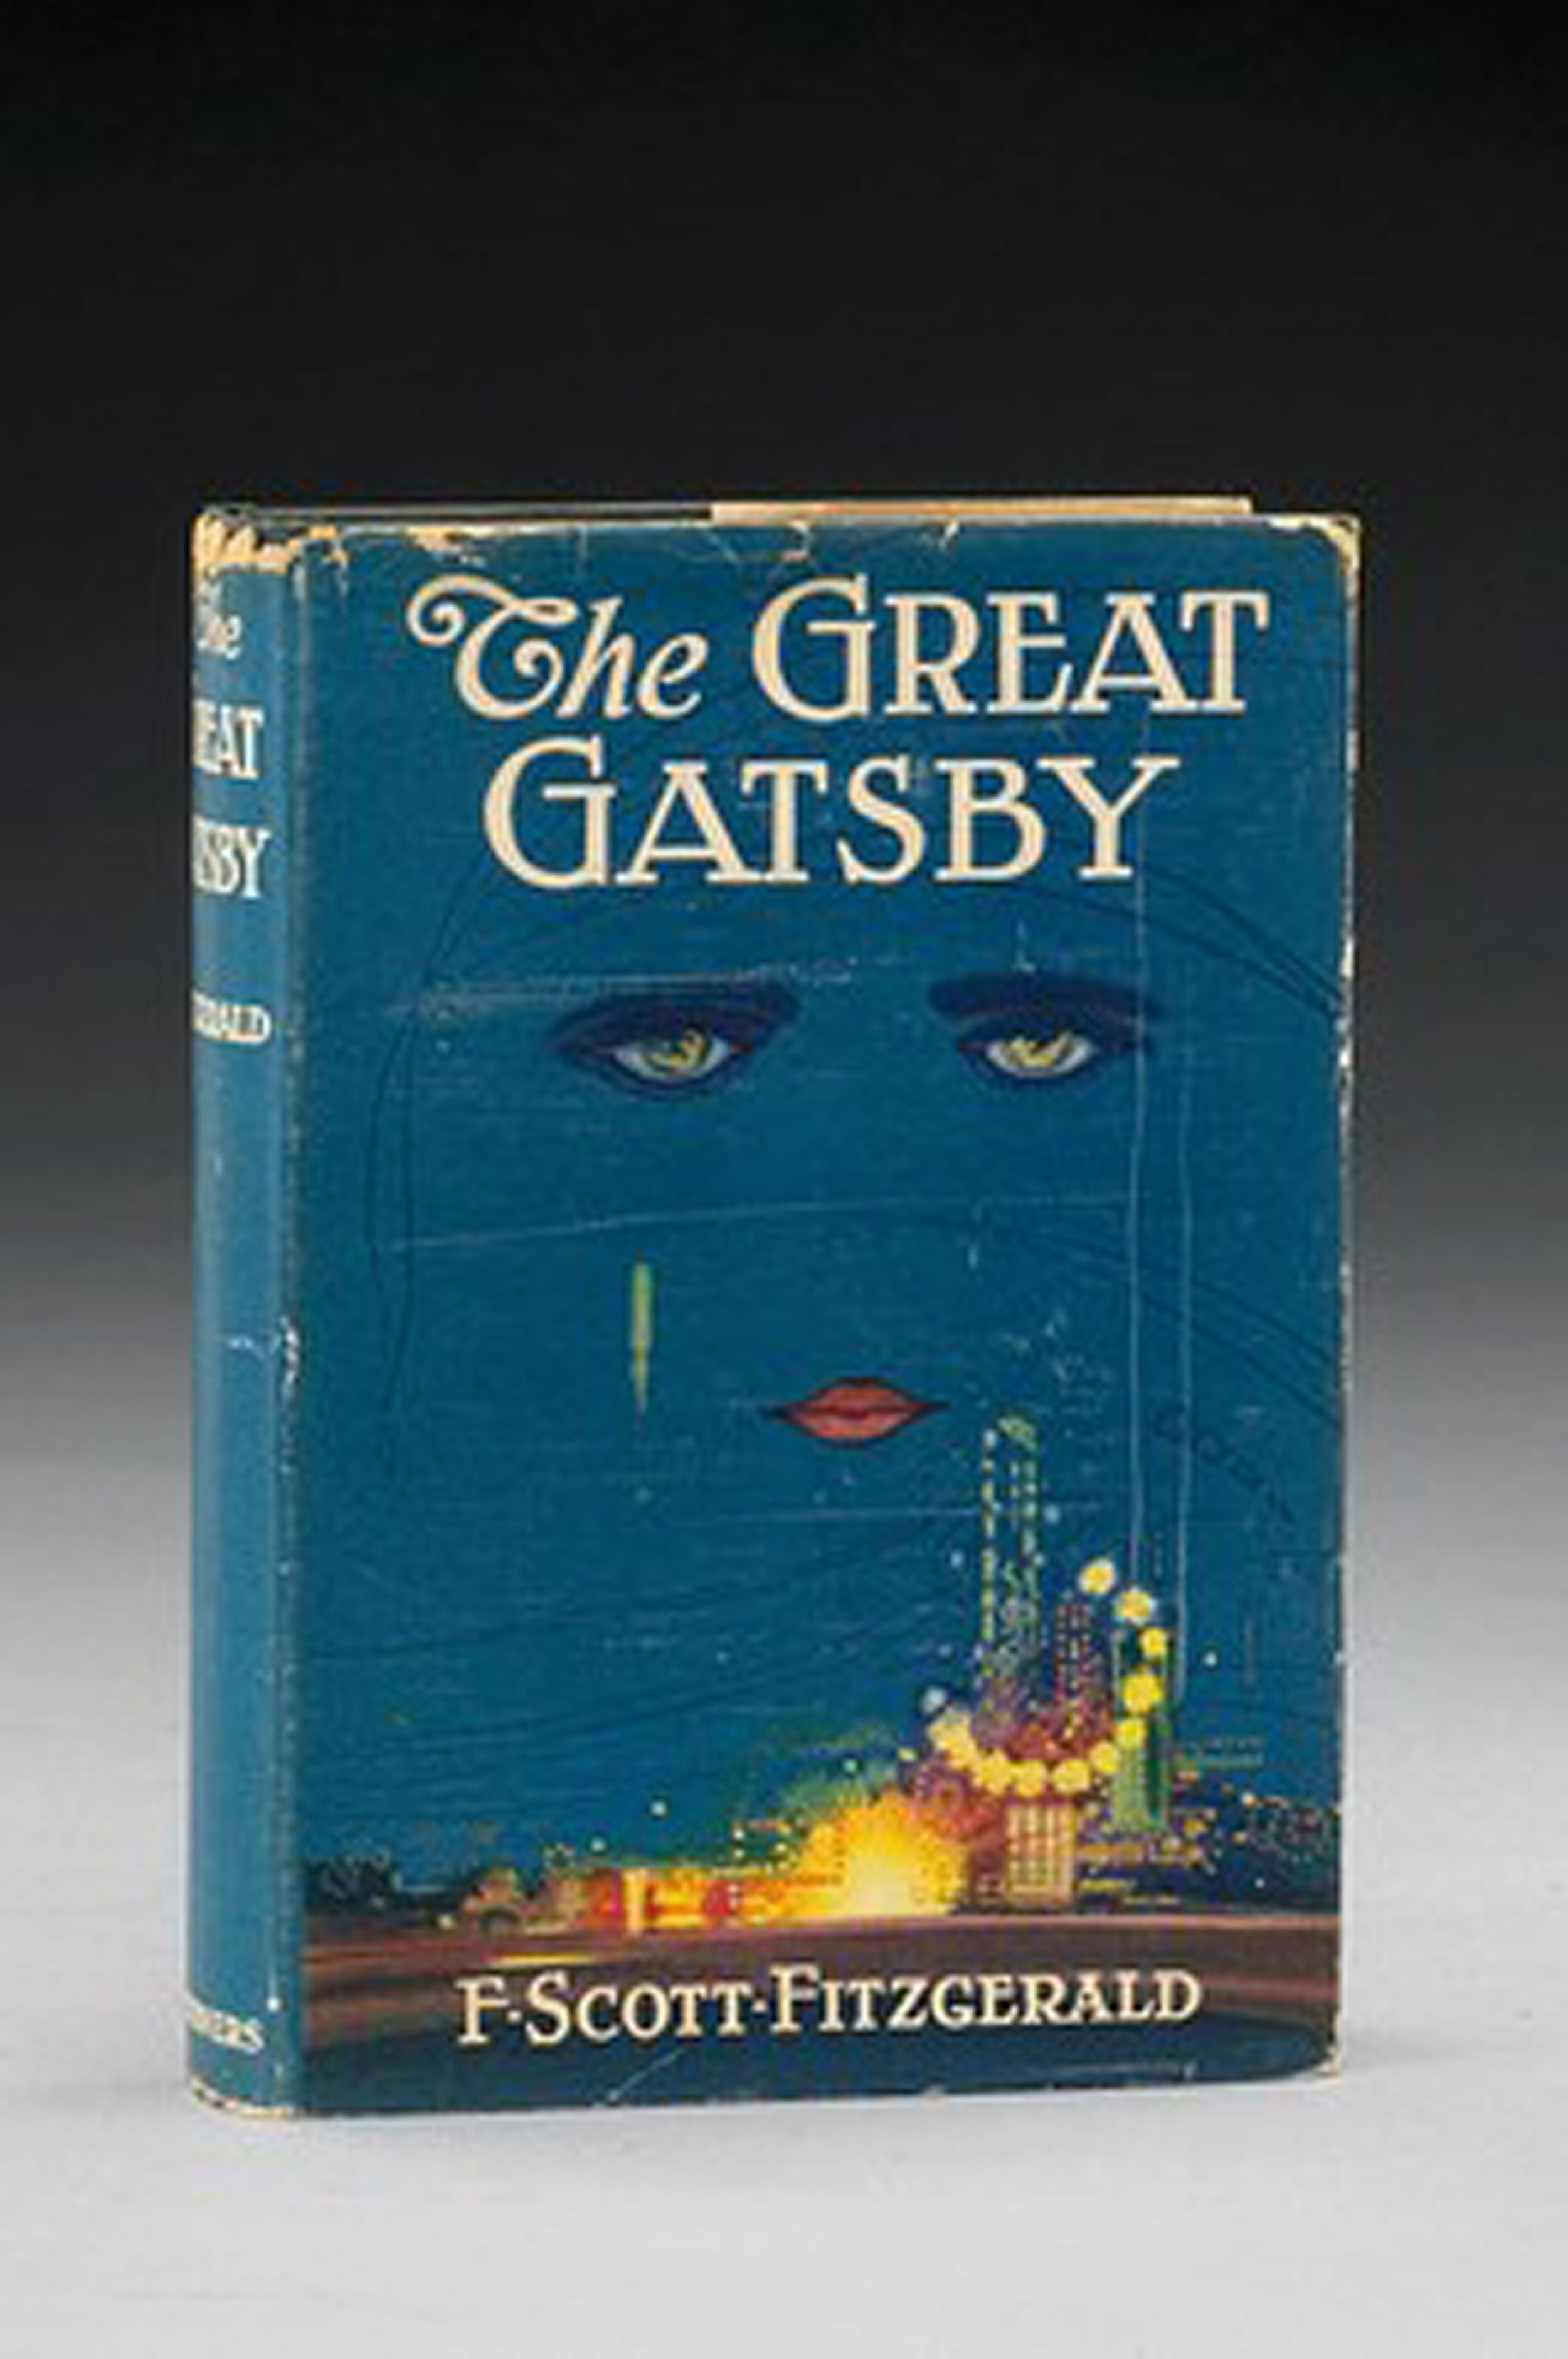 Great gatsby book the great gatsby without